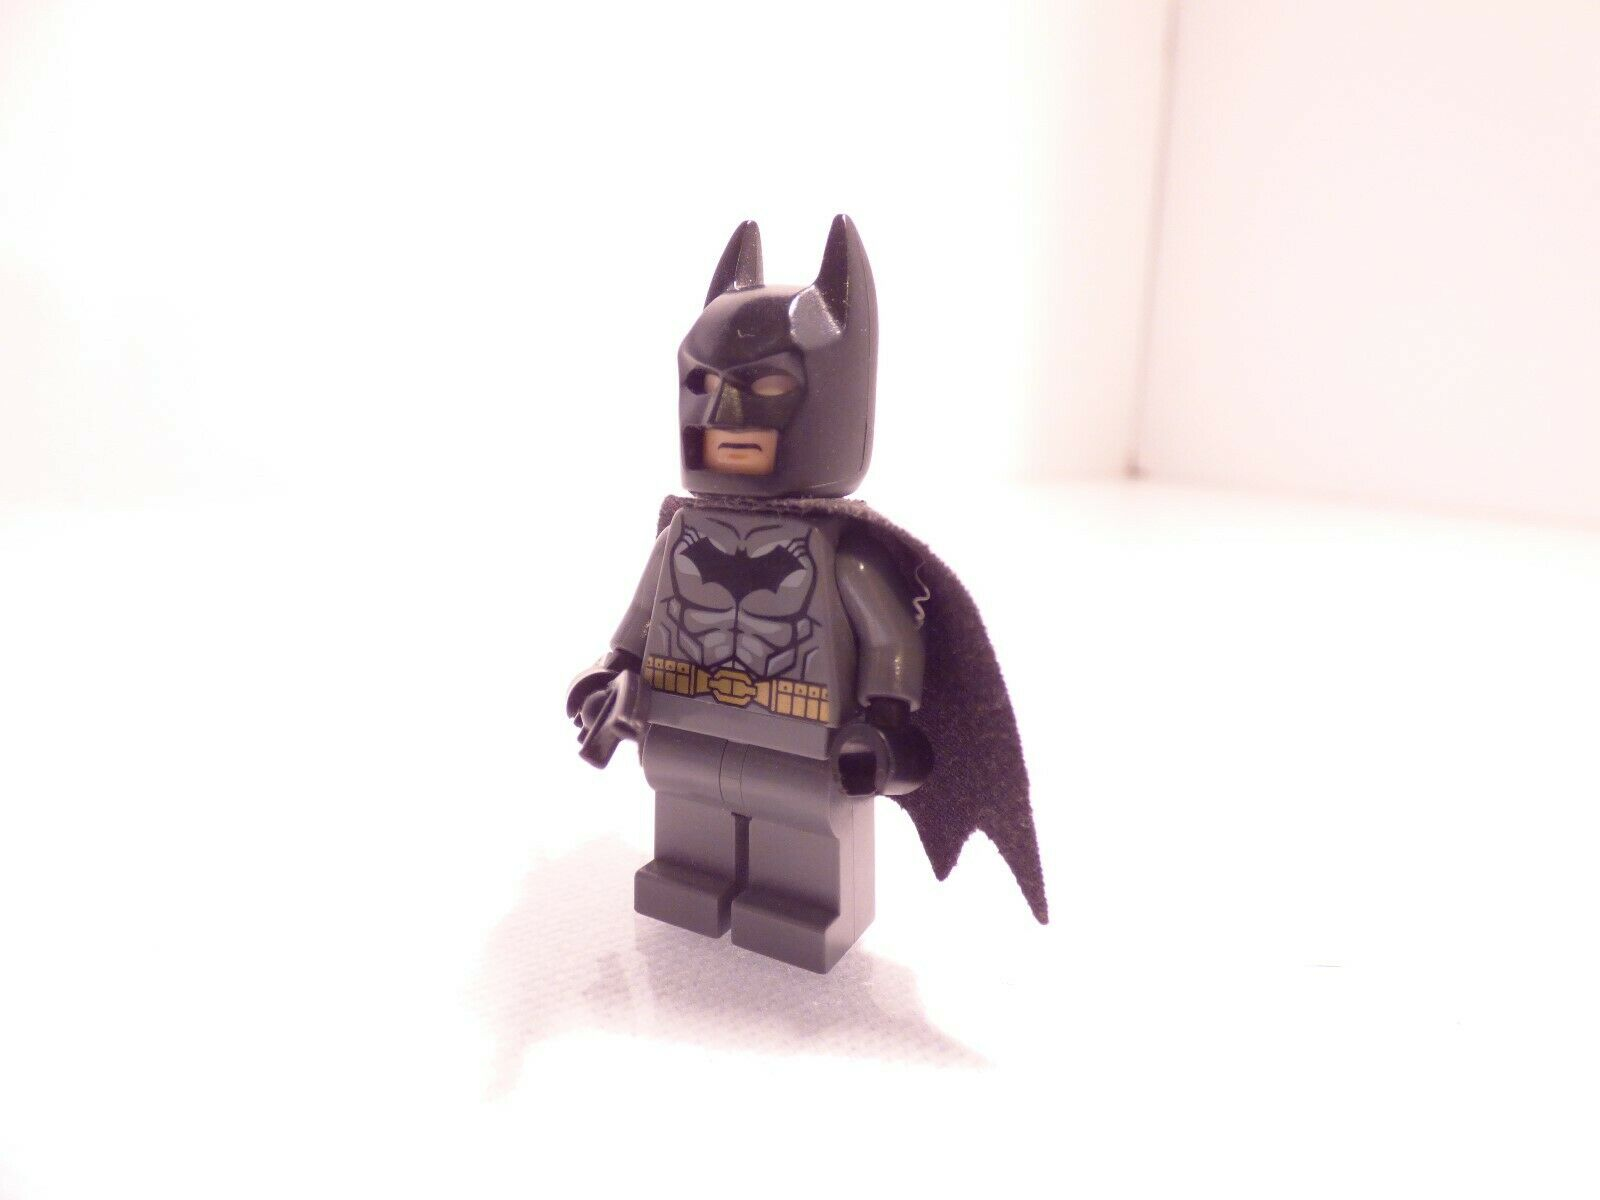 LEGO DC Super Heroes Bruce Wayne with whip MINIFIG from Lego set #76122 New